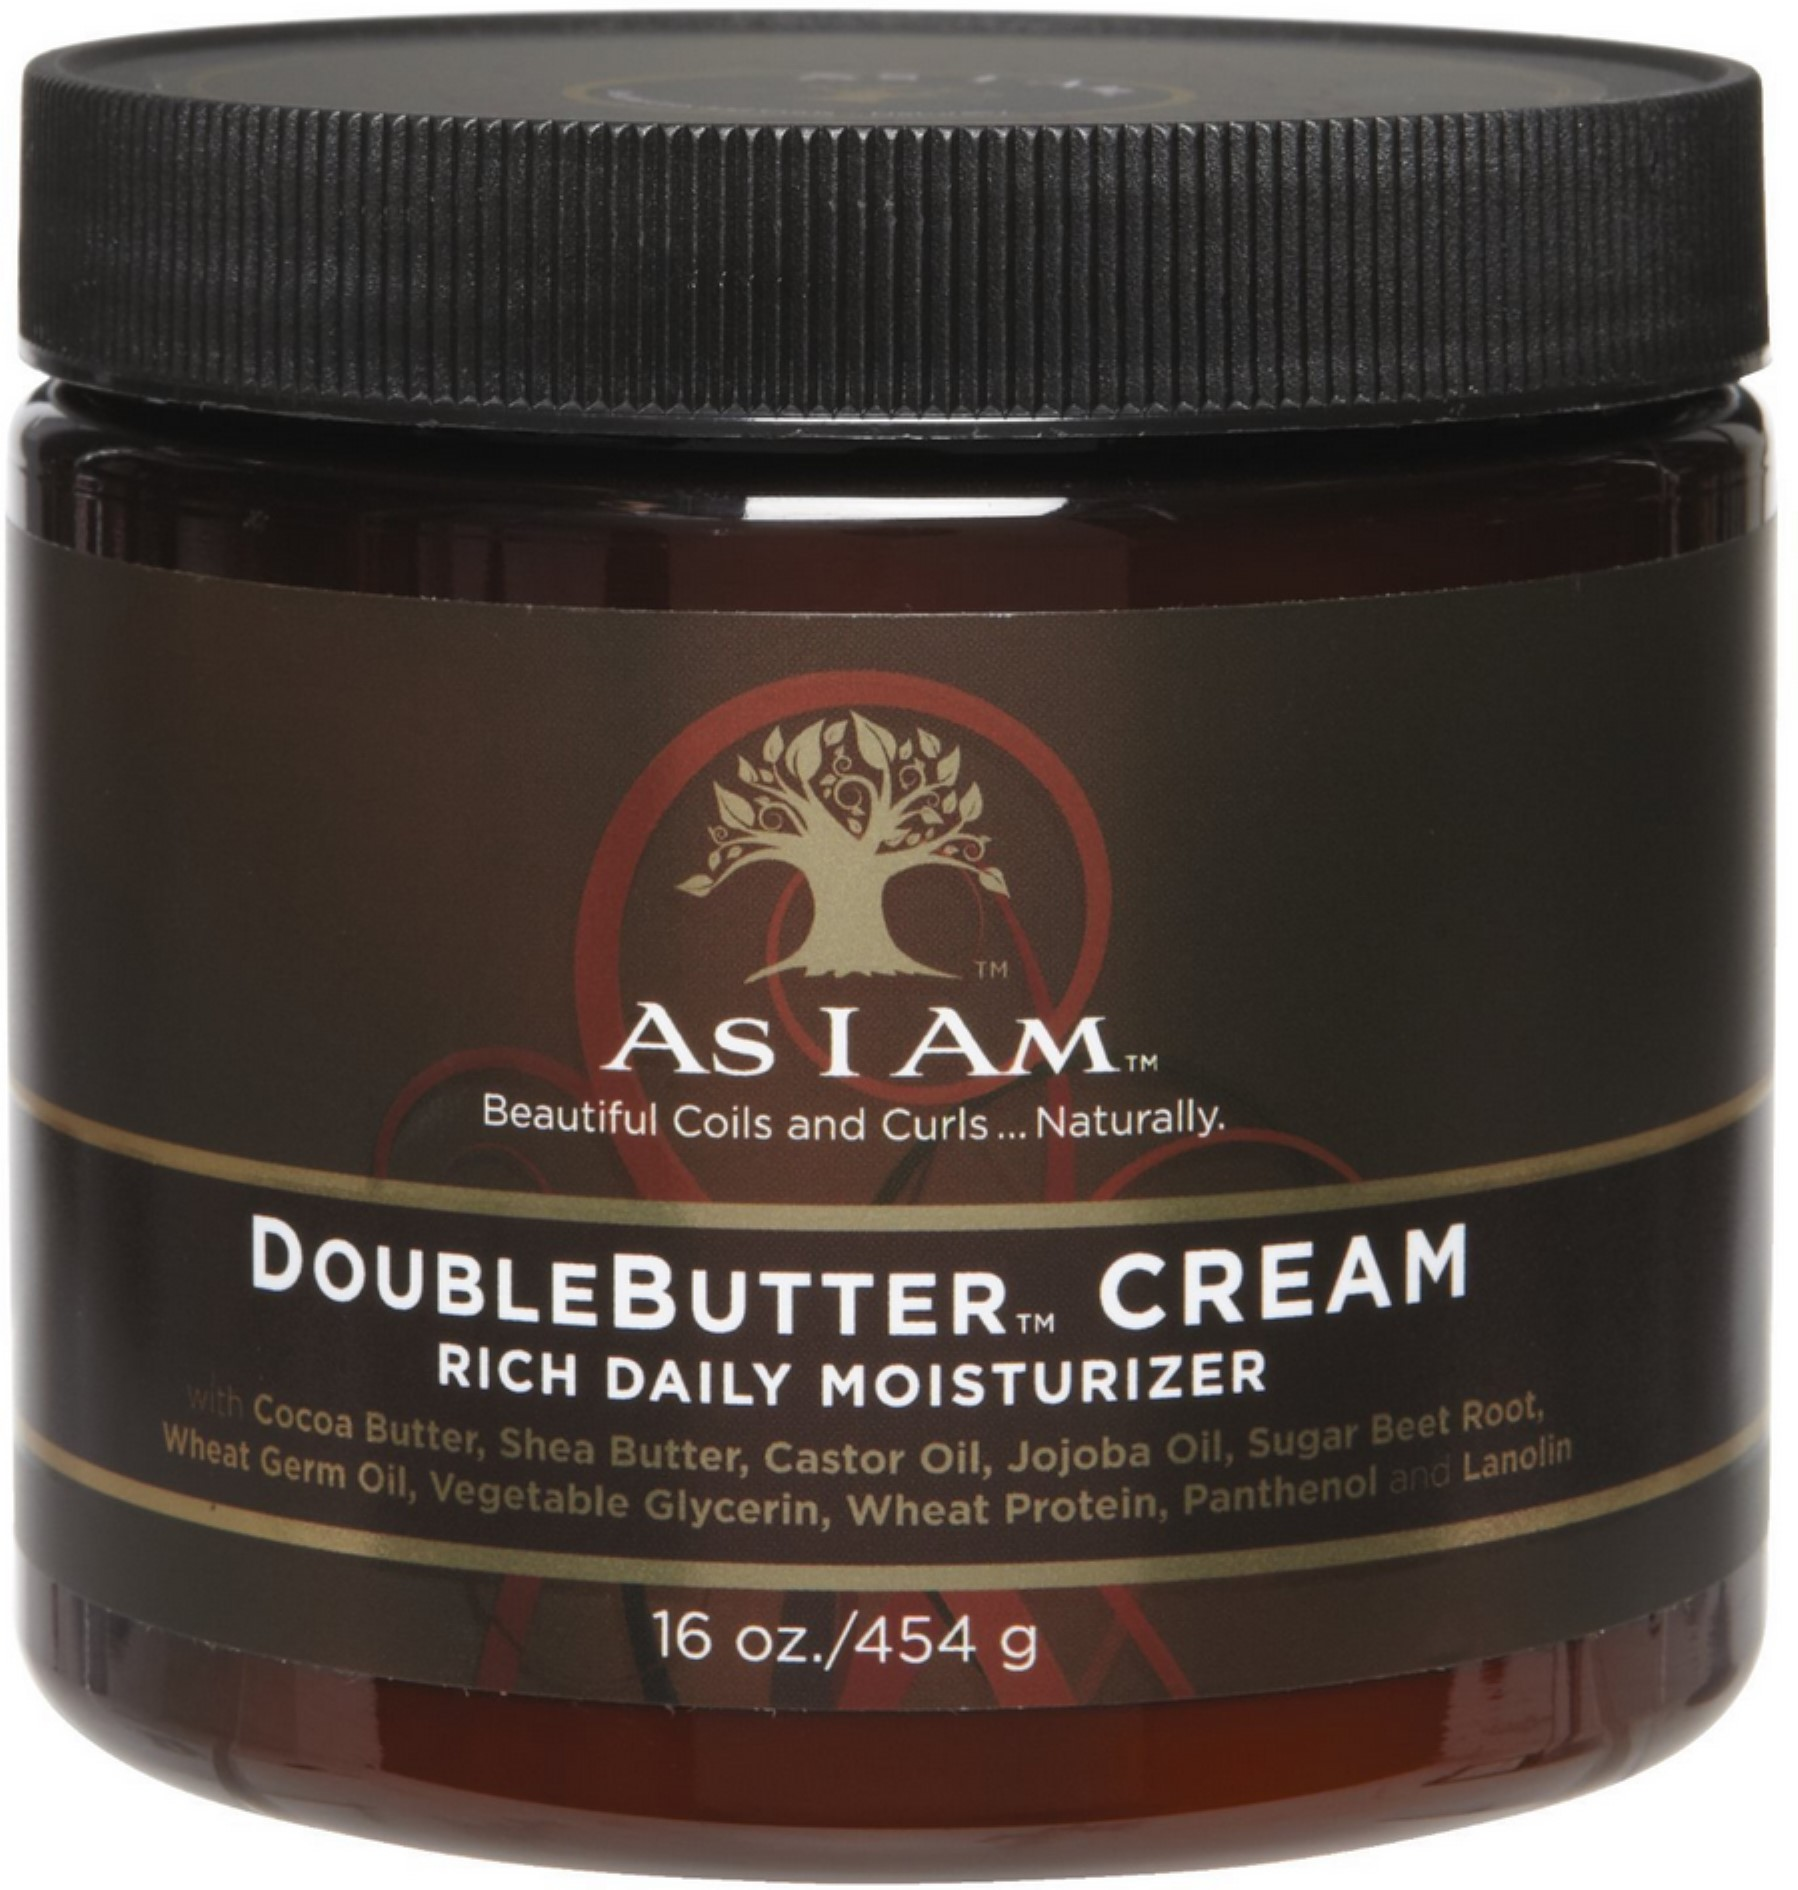 As I Am Double Butter Cream, 16 oz